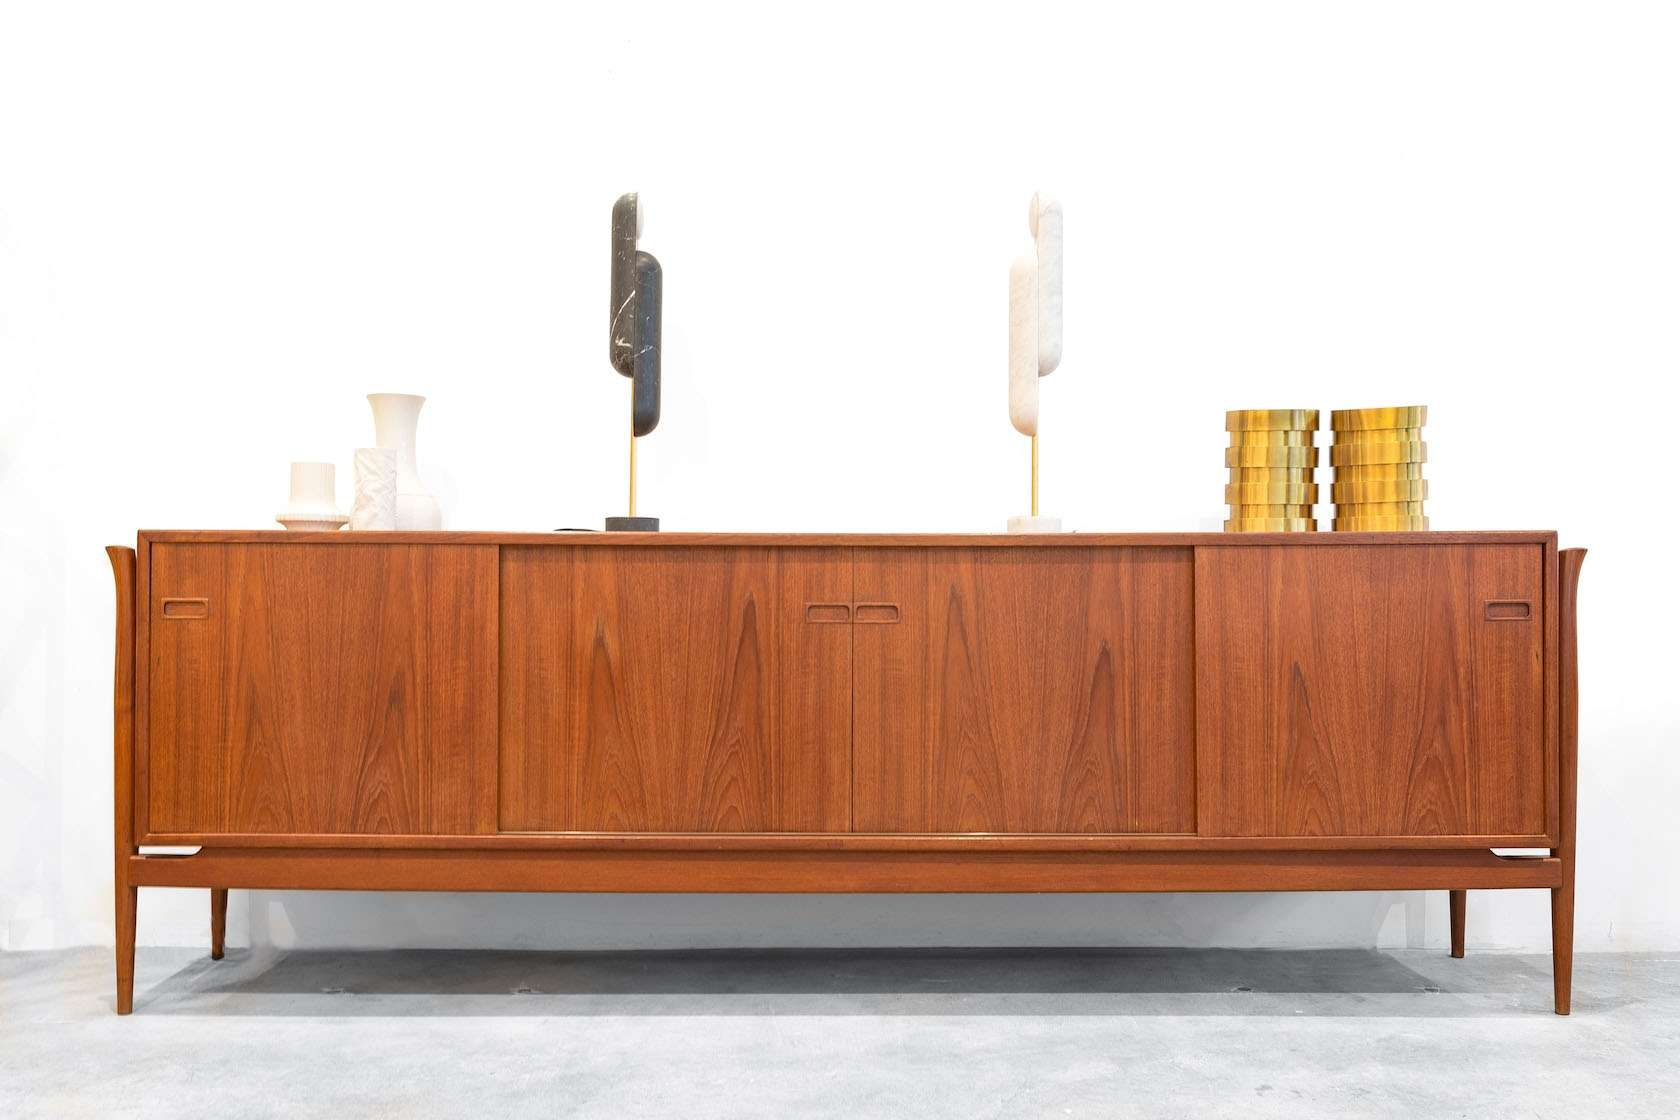 Vintage Danish Sideboardfinn Juhl For Sale At Pamono Throughout Danish Retro Sideboards (Gallery 11 of 20)